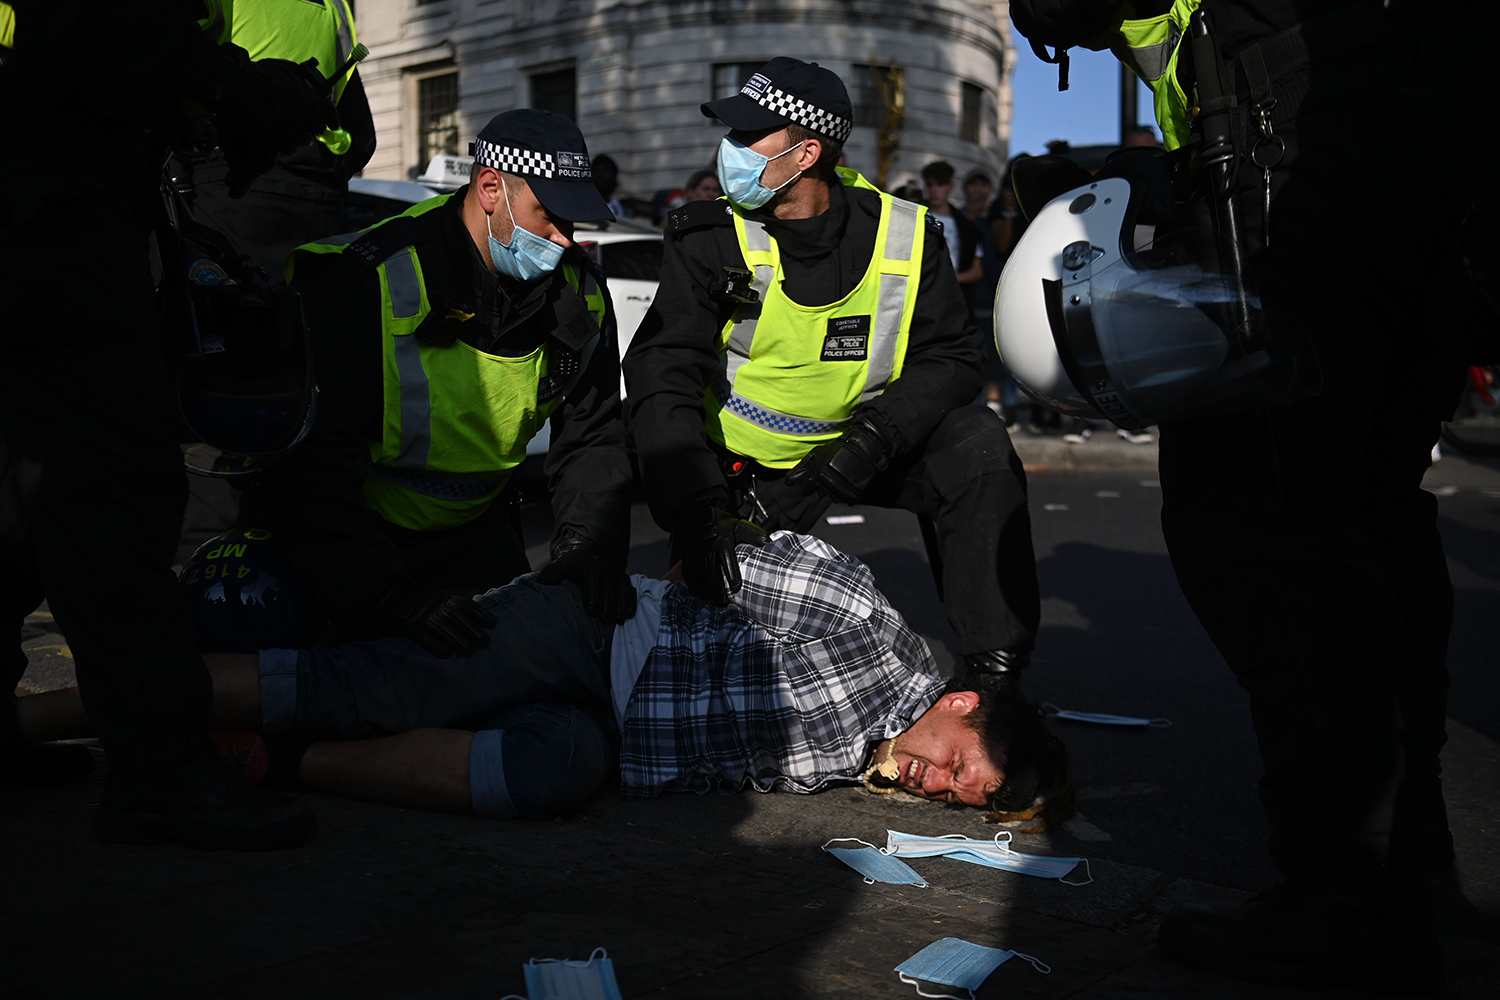 A demonstrator at an anti-vax rally is arrested following clashes with police officers at Trafalgar Square, central London, on Sept. 19. DANIEL LEAL-OLIVAS/AFP via Getty Images